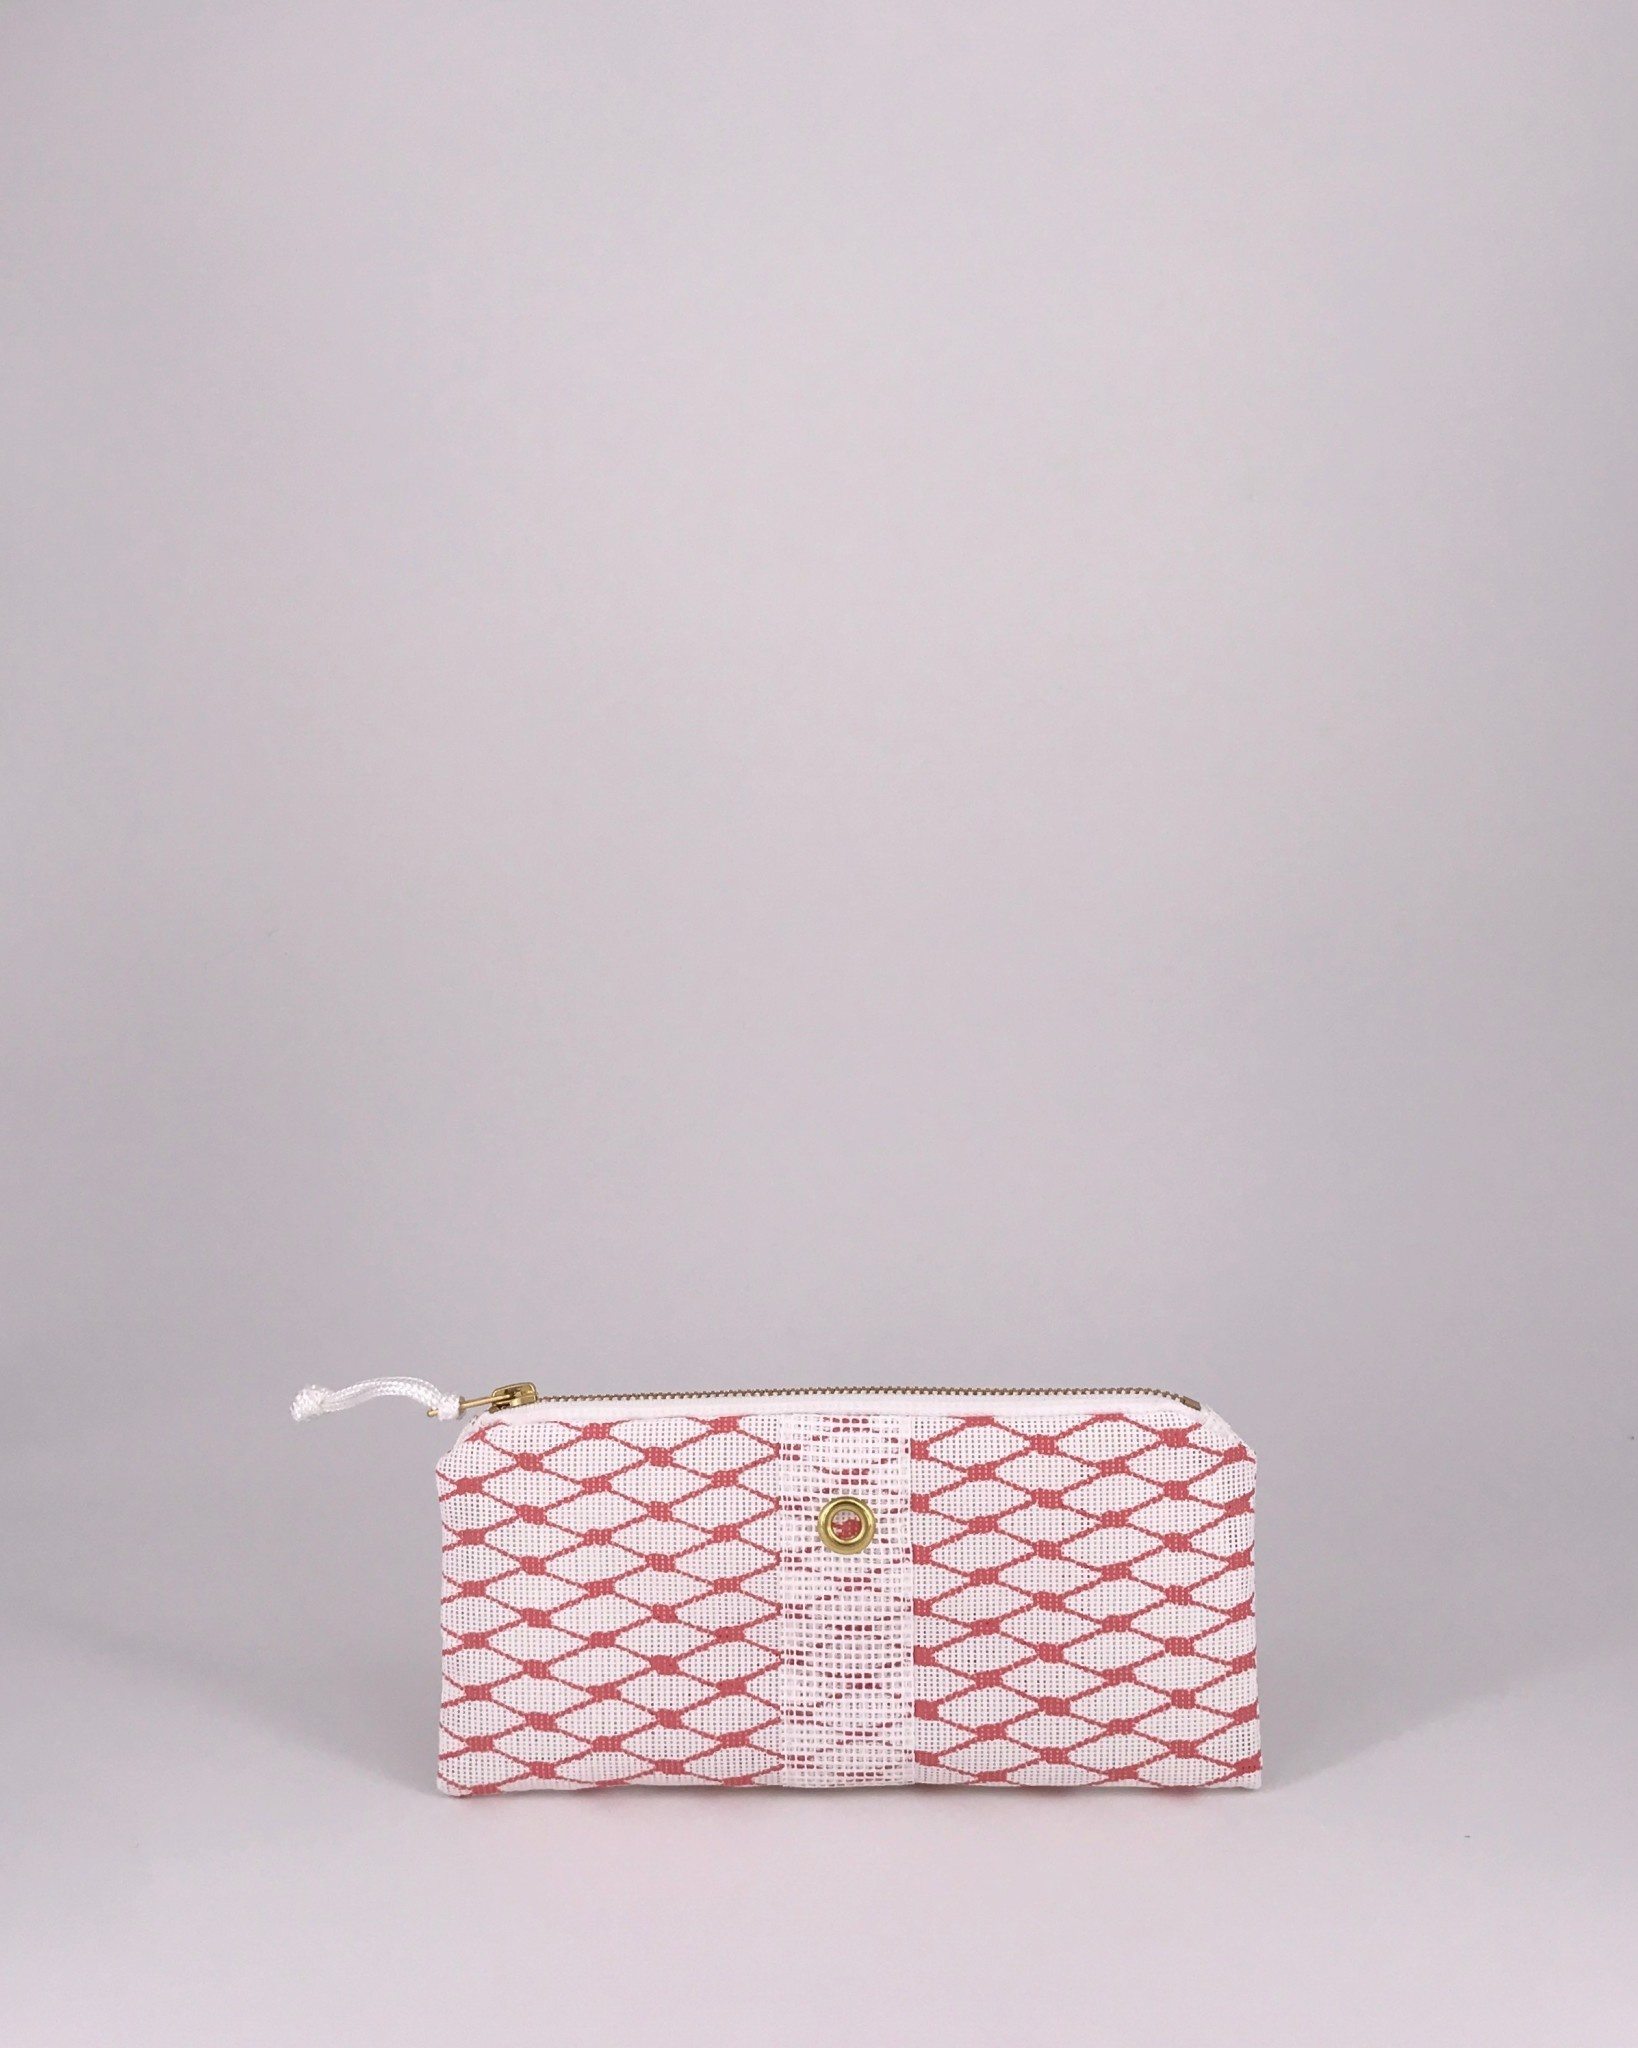 Alaina Marie ® Lobster Bisque & White Mini Clutch